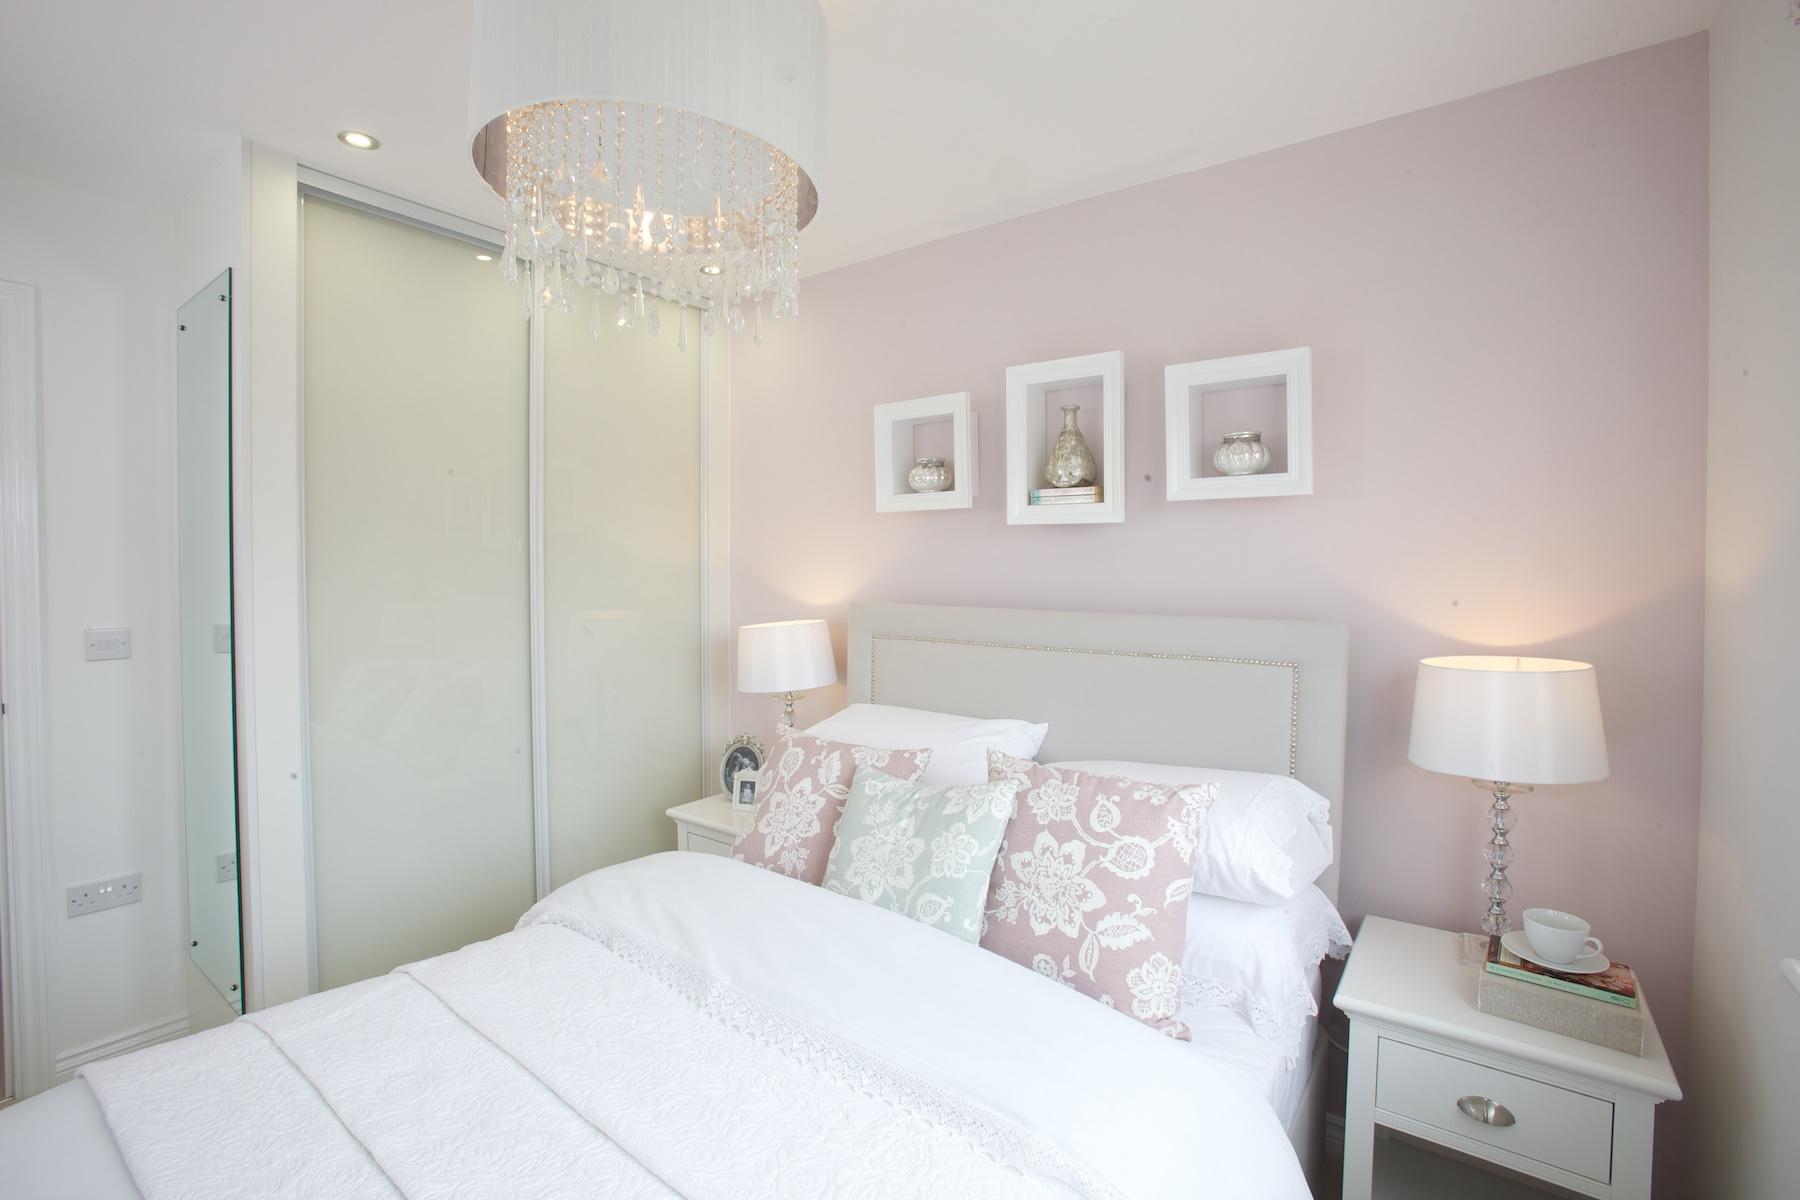 Kings Copse show home - Bedroom